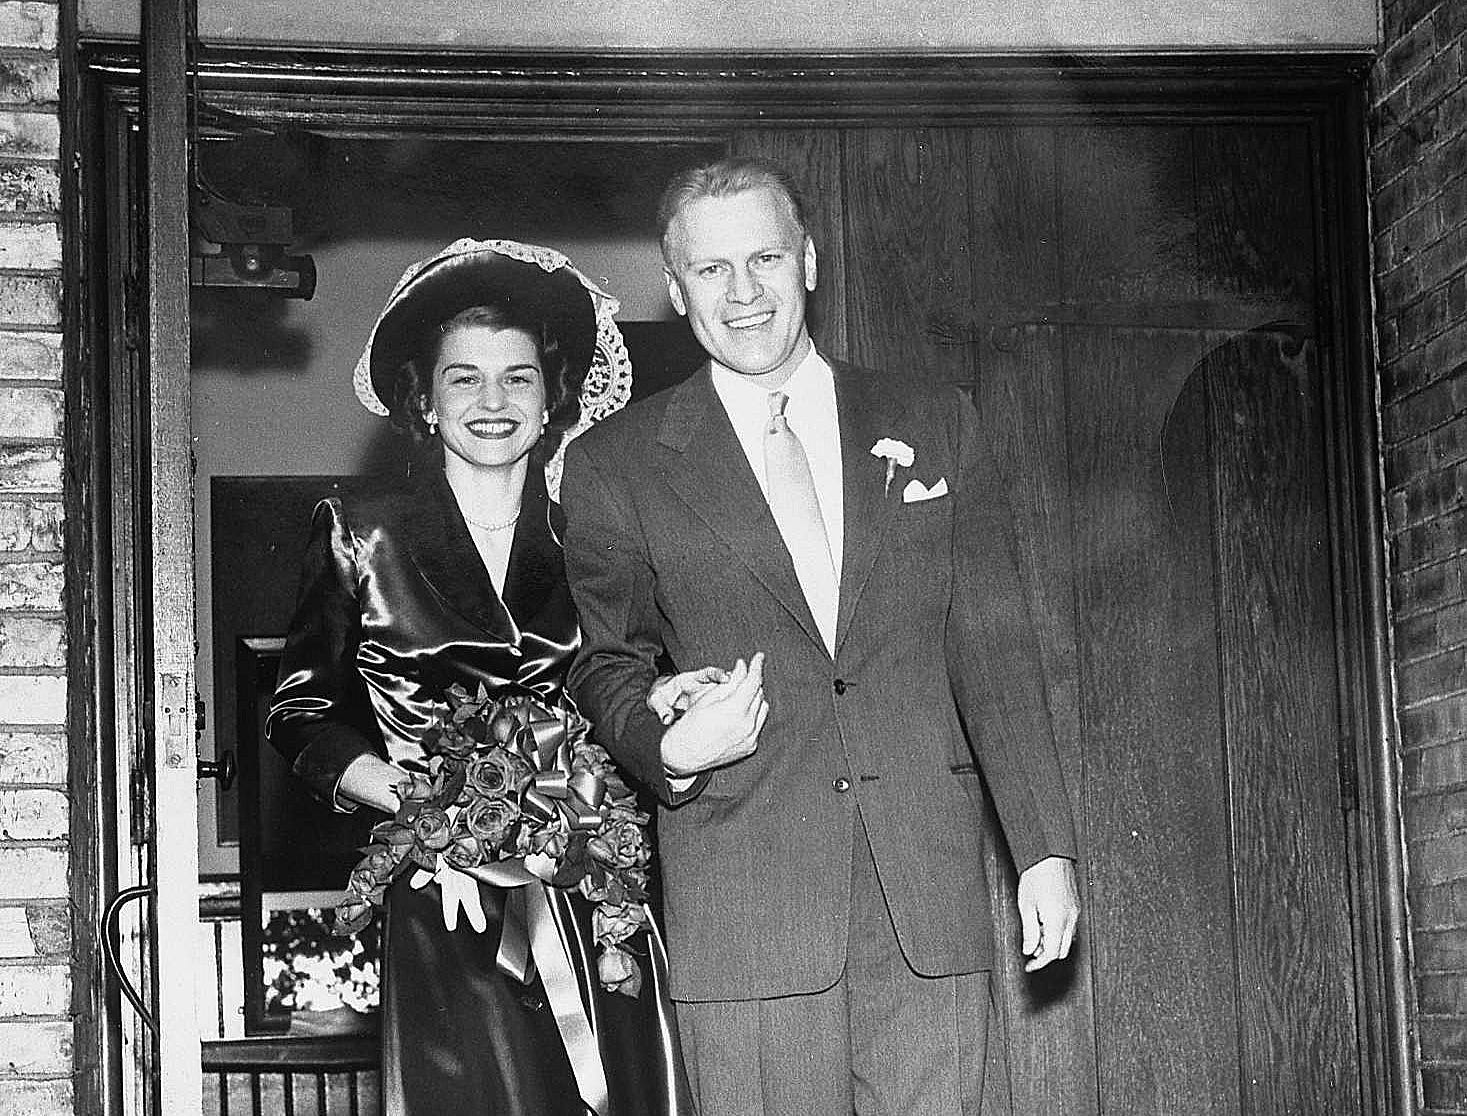 Joyful newlyweds, Betty and Gerald Ford, on their wedding day, October 15, 1948 in Grand Rapids.